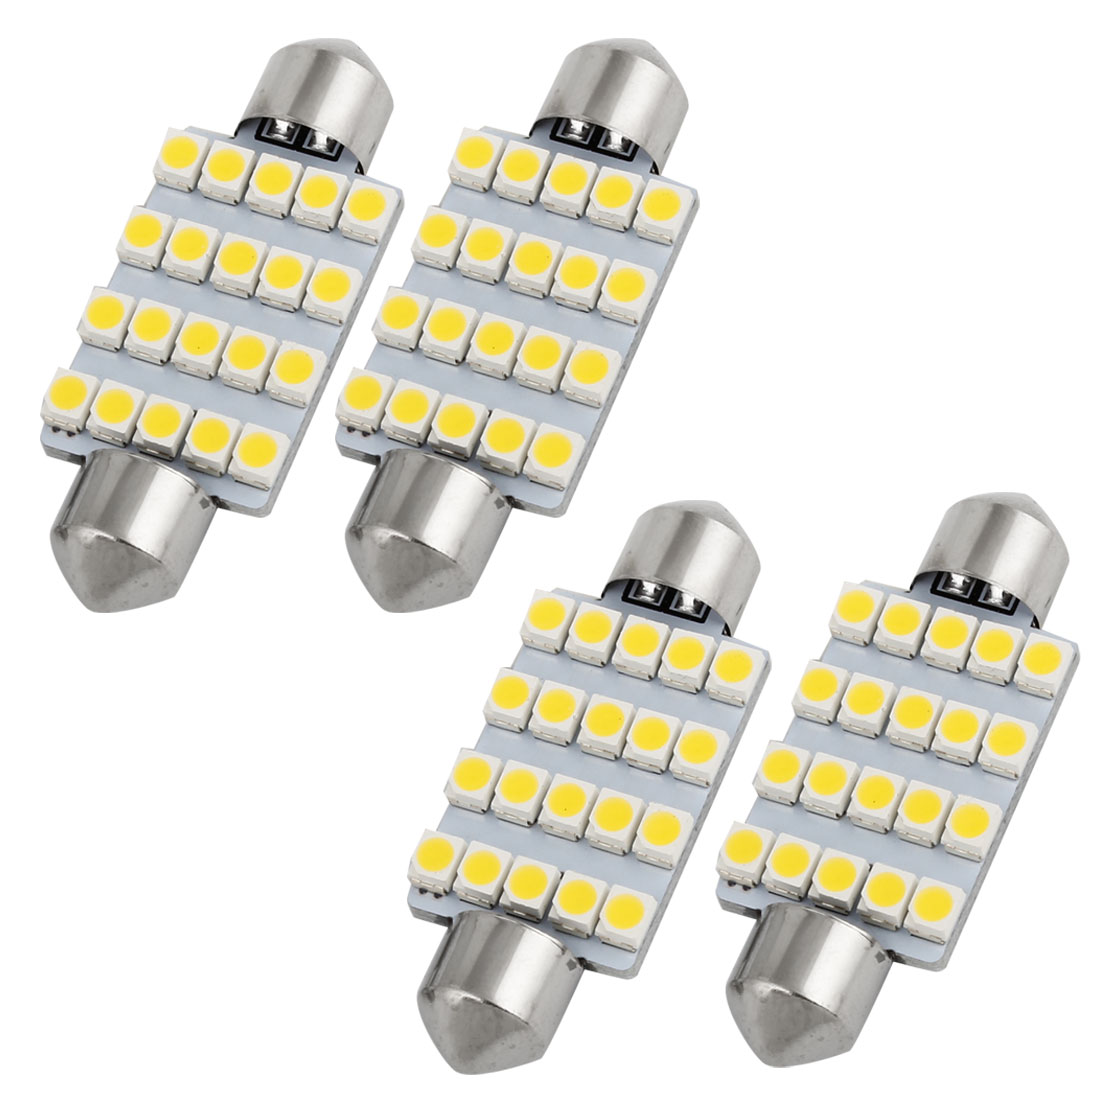 4pcs 41mm 20 SMD 1210 LED Warm White Festoon Dome Light Lamp 212 211-2 Internal